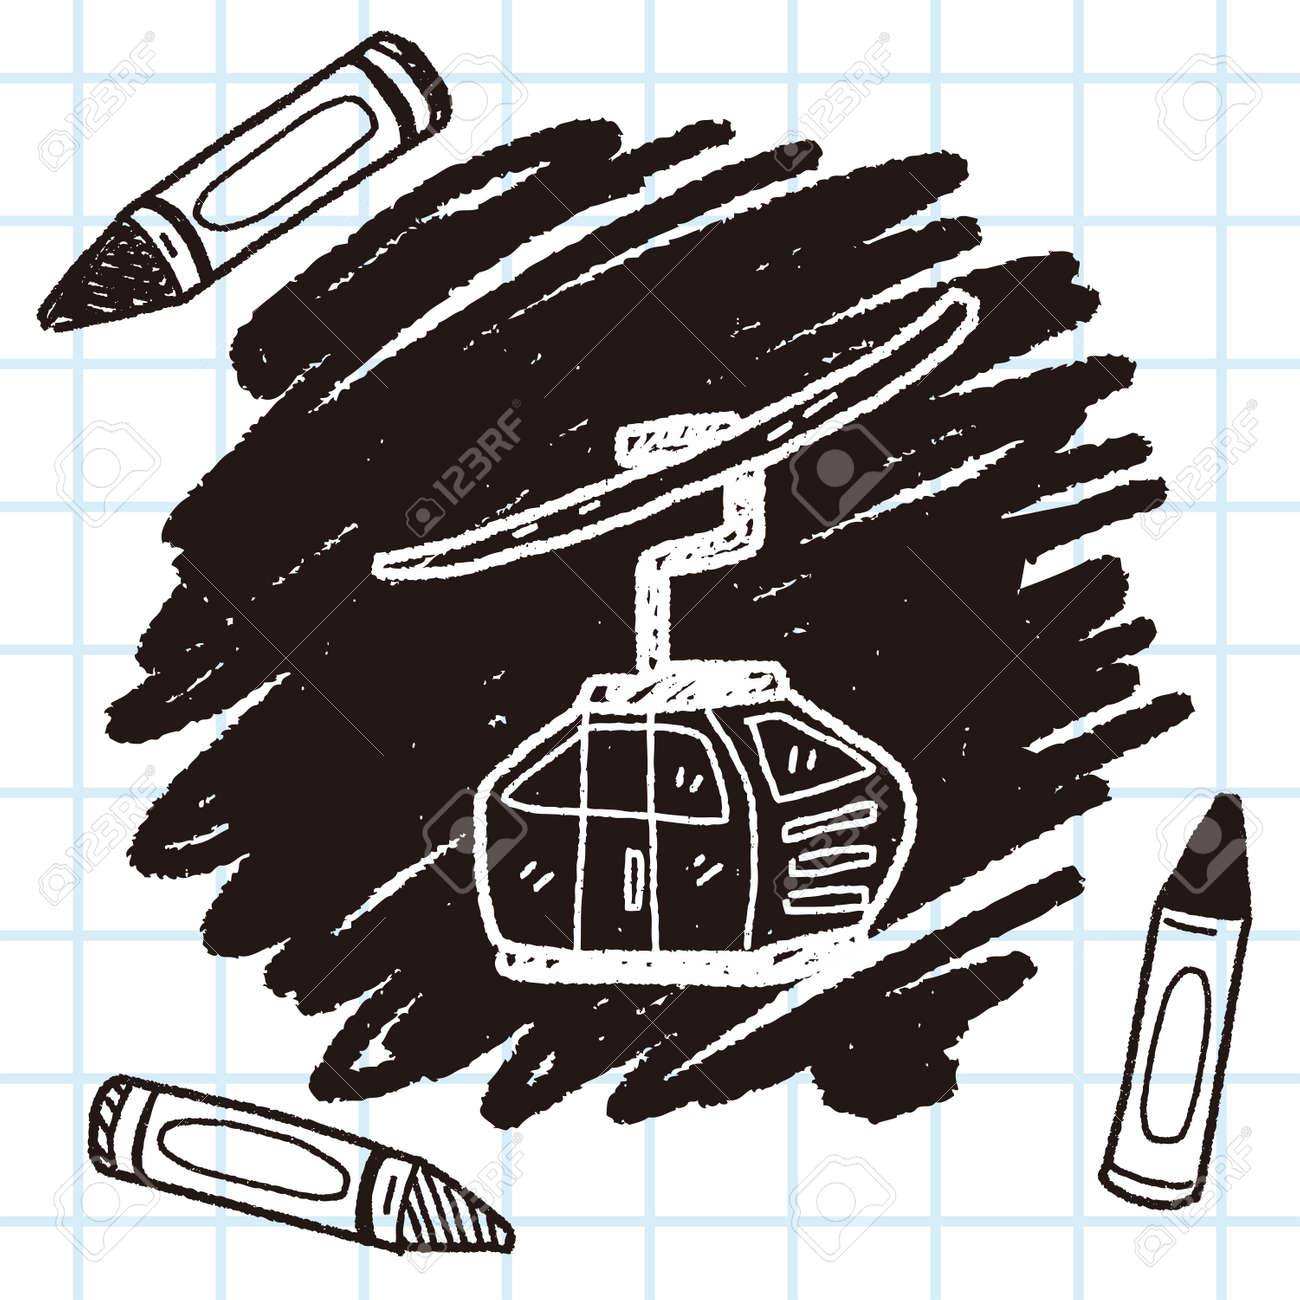 Cable Car Doodle Royalty Free Cliparts, Vectors, And Stock ...